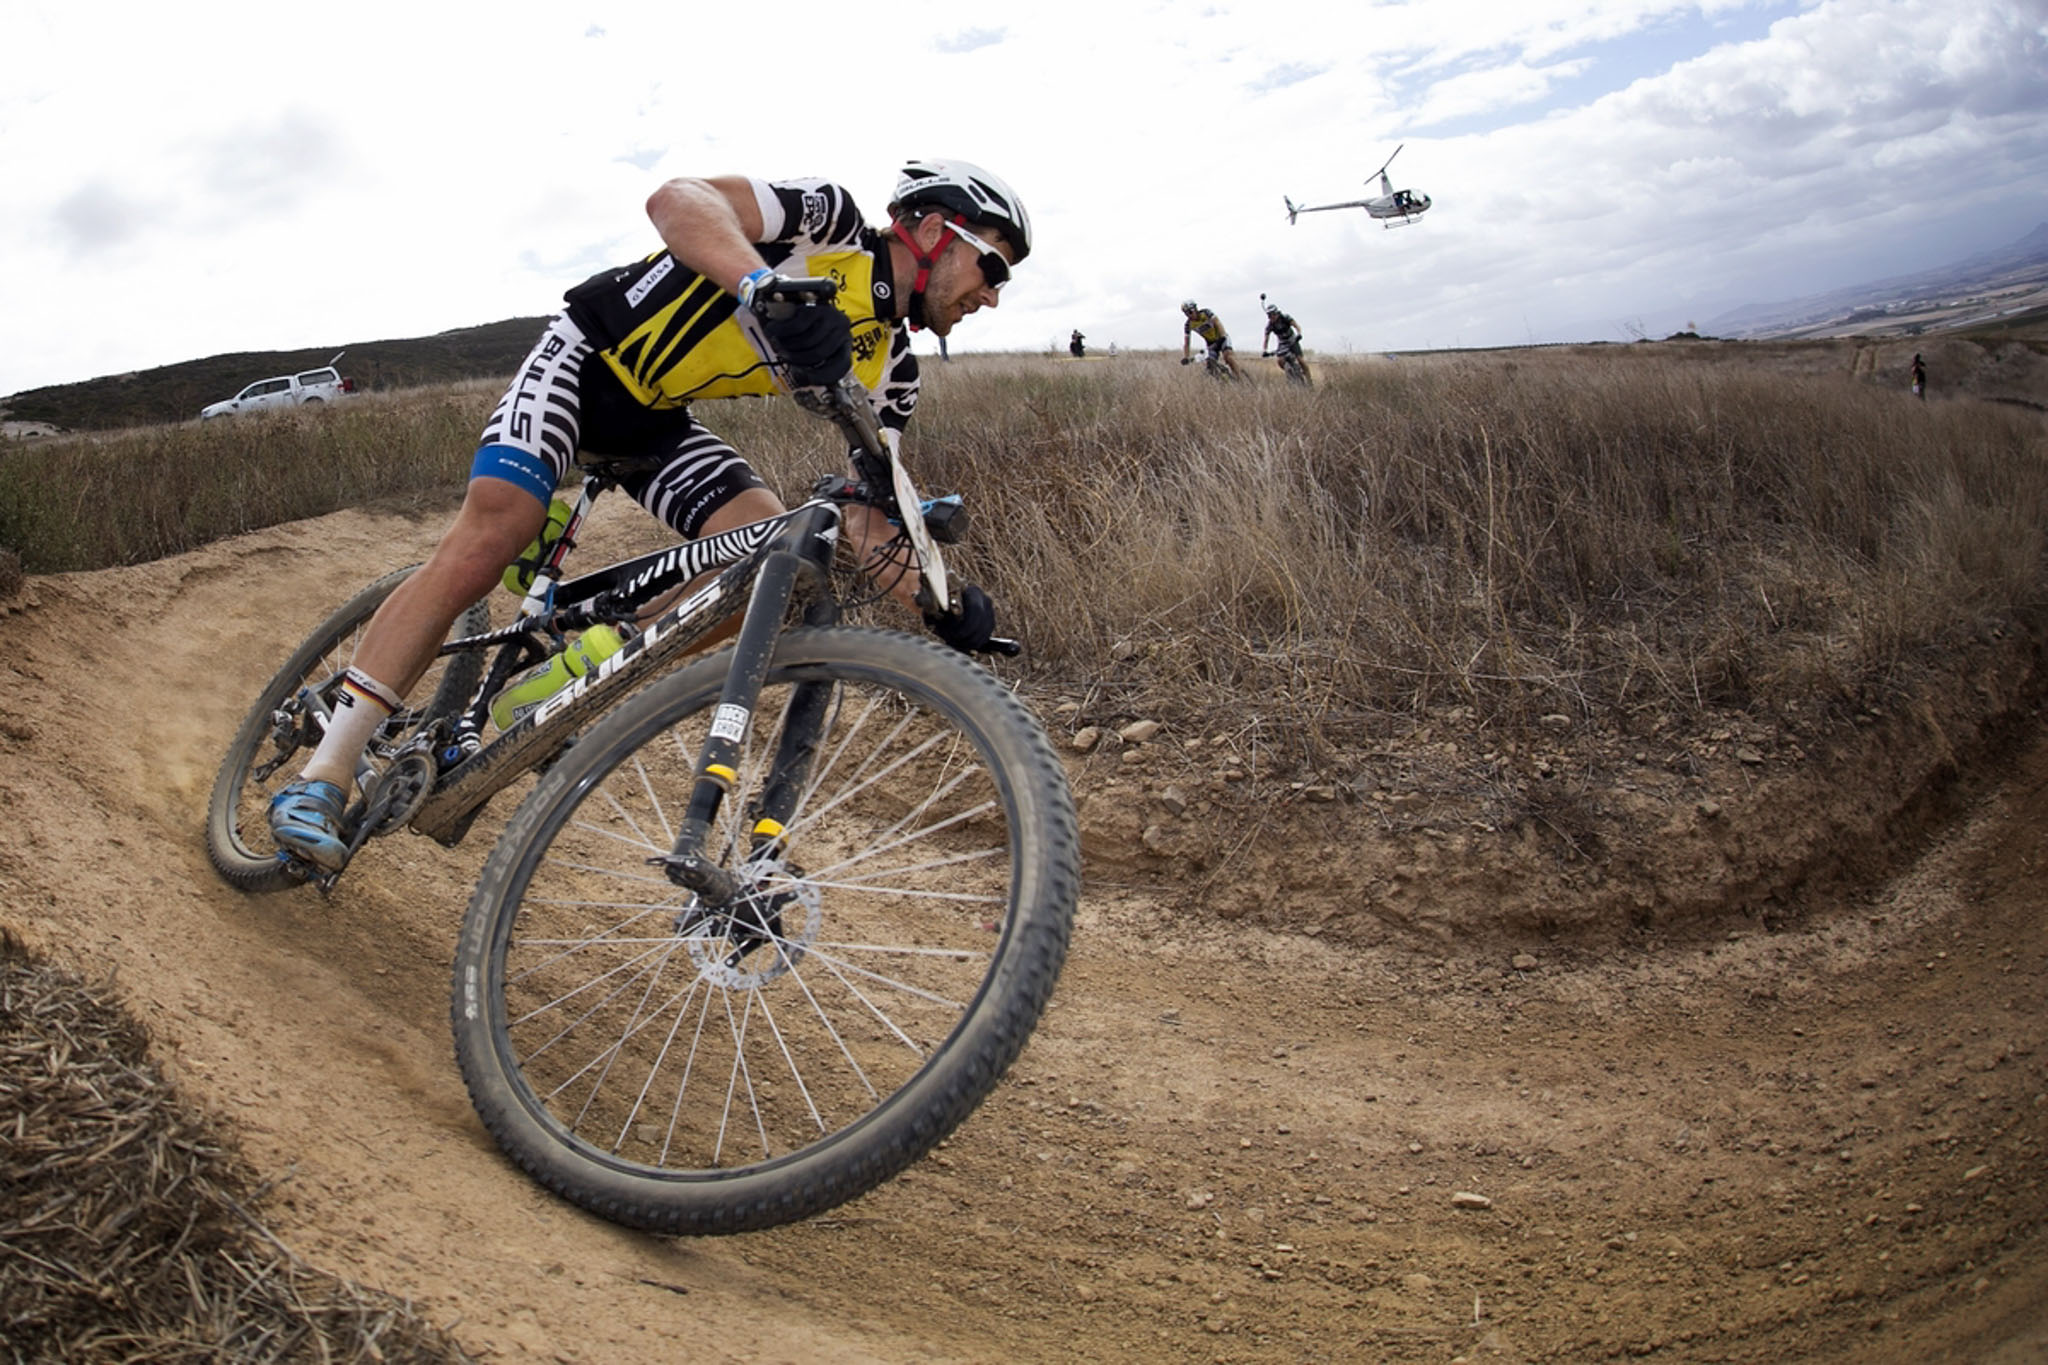 Karl Platt of Bulls during the final stage (stage 7) of the 2016 Absa Cape Epic Mountain Bike stage race from Boschendal in Stellenbosch to Meerendal Wine Estate in Durbanville, South Africa on the 20th March 2016 Photo by Mark Sampson/Cape Epic/SPORTZPICS PLEASE ENSURE THE APPROPRIATE CREDIT IS GIVEN TO THE PHOTOGRAPHER AND SPORTZPICS ALONG WITH THE ABSA CAPE EPIC ace2016